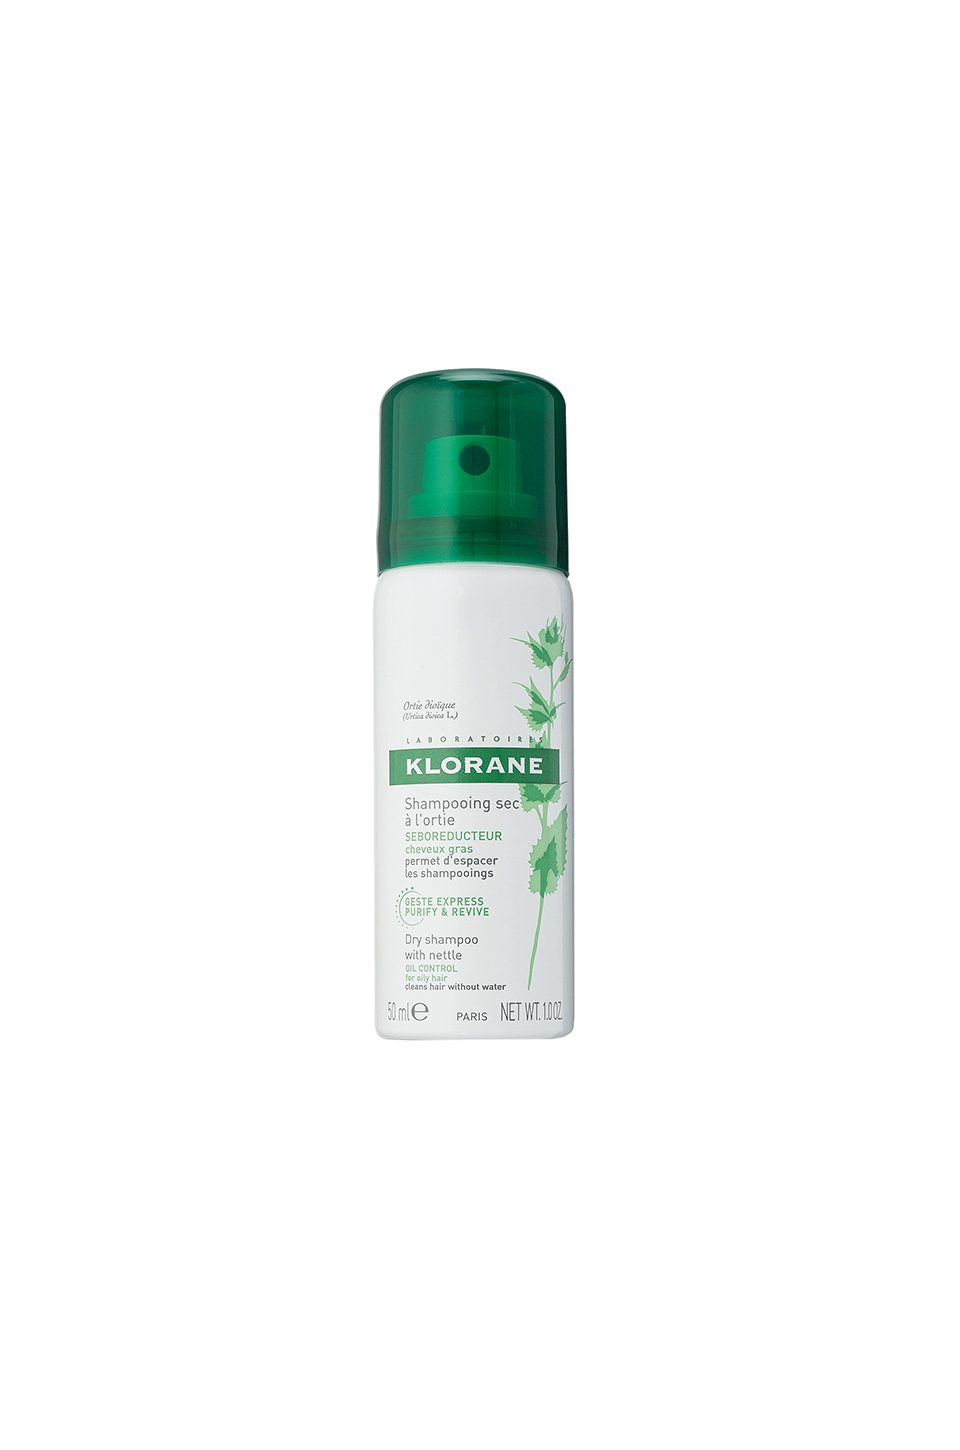 Klorane Travel Dry Shampoo with Nettle in